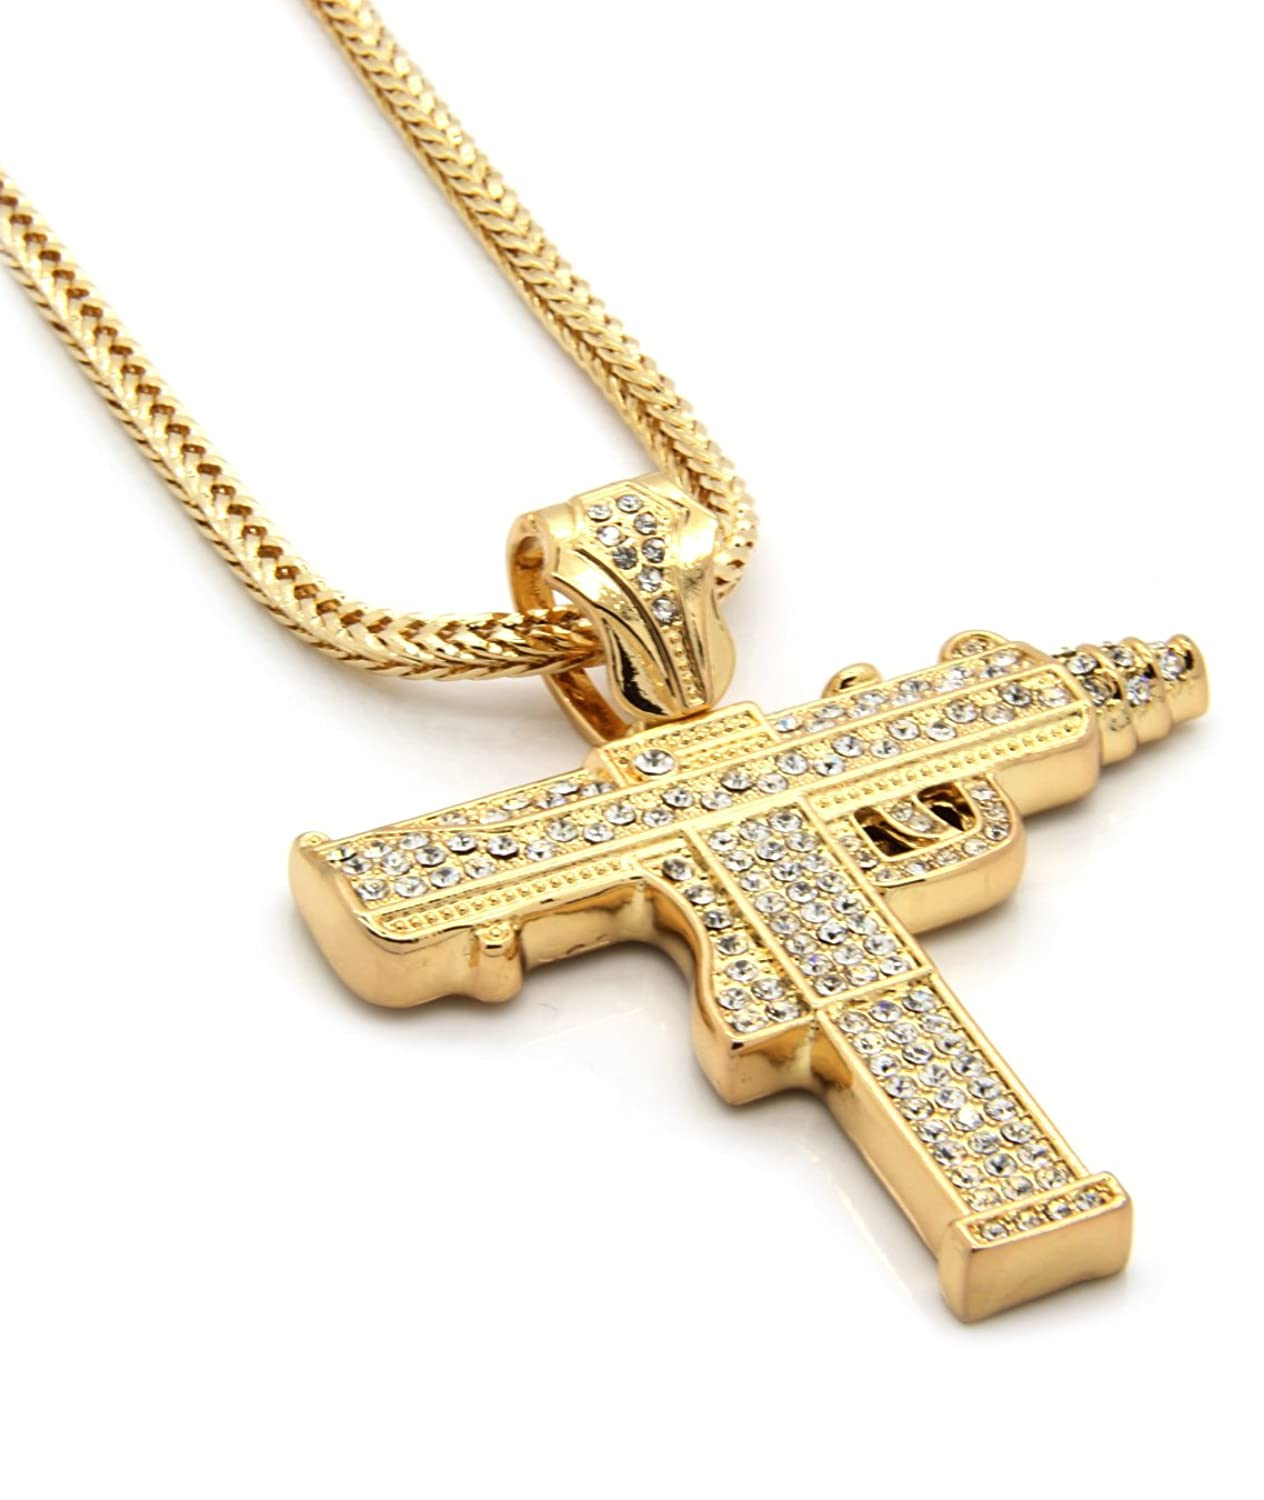 trust free letter rope chain necklace pendant plated we success real mens with in halukakah gold s men